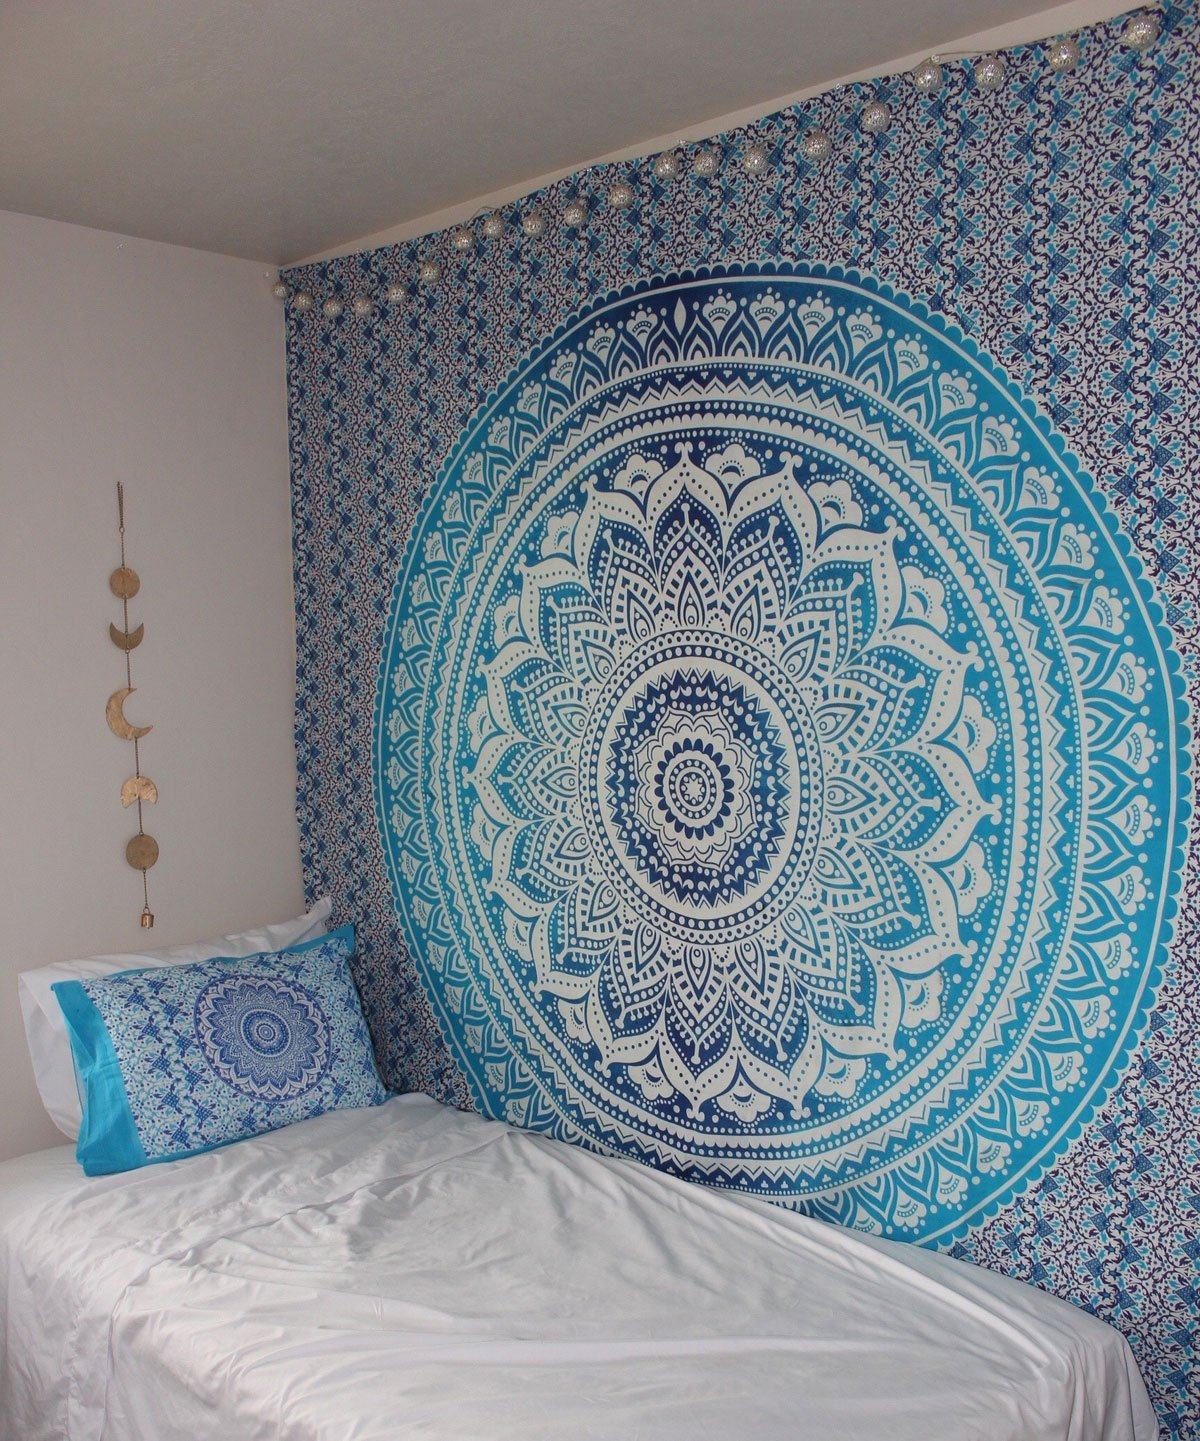 Royal Furnish Blue Tapestry - Hippie Bohemian Psychedelic Dusty Light Blue Indian Manadala Bedding Tapestry Wall Hanging for Bedroom, Living Room, Dorm Room and Boho Room Decoration (Queen, Blue) 475